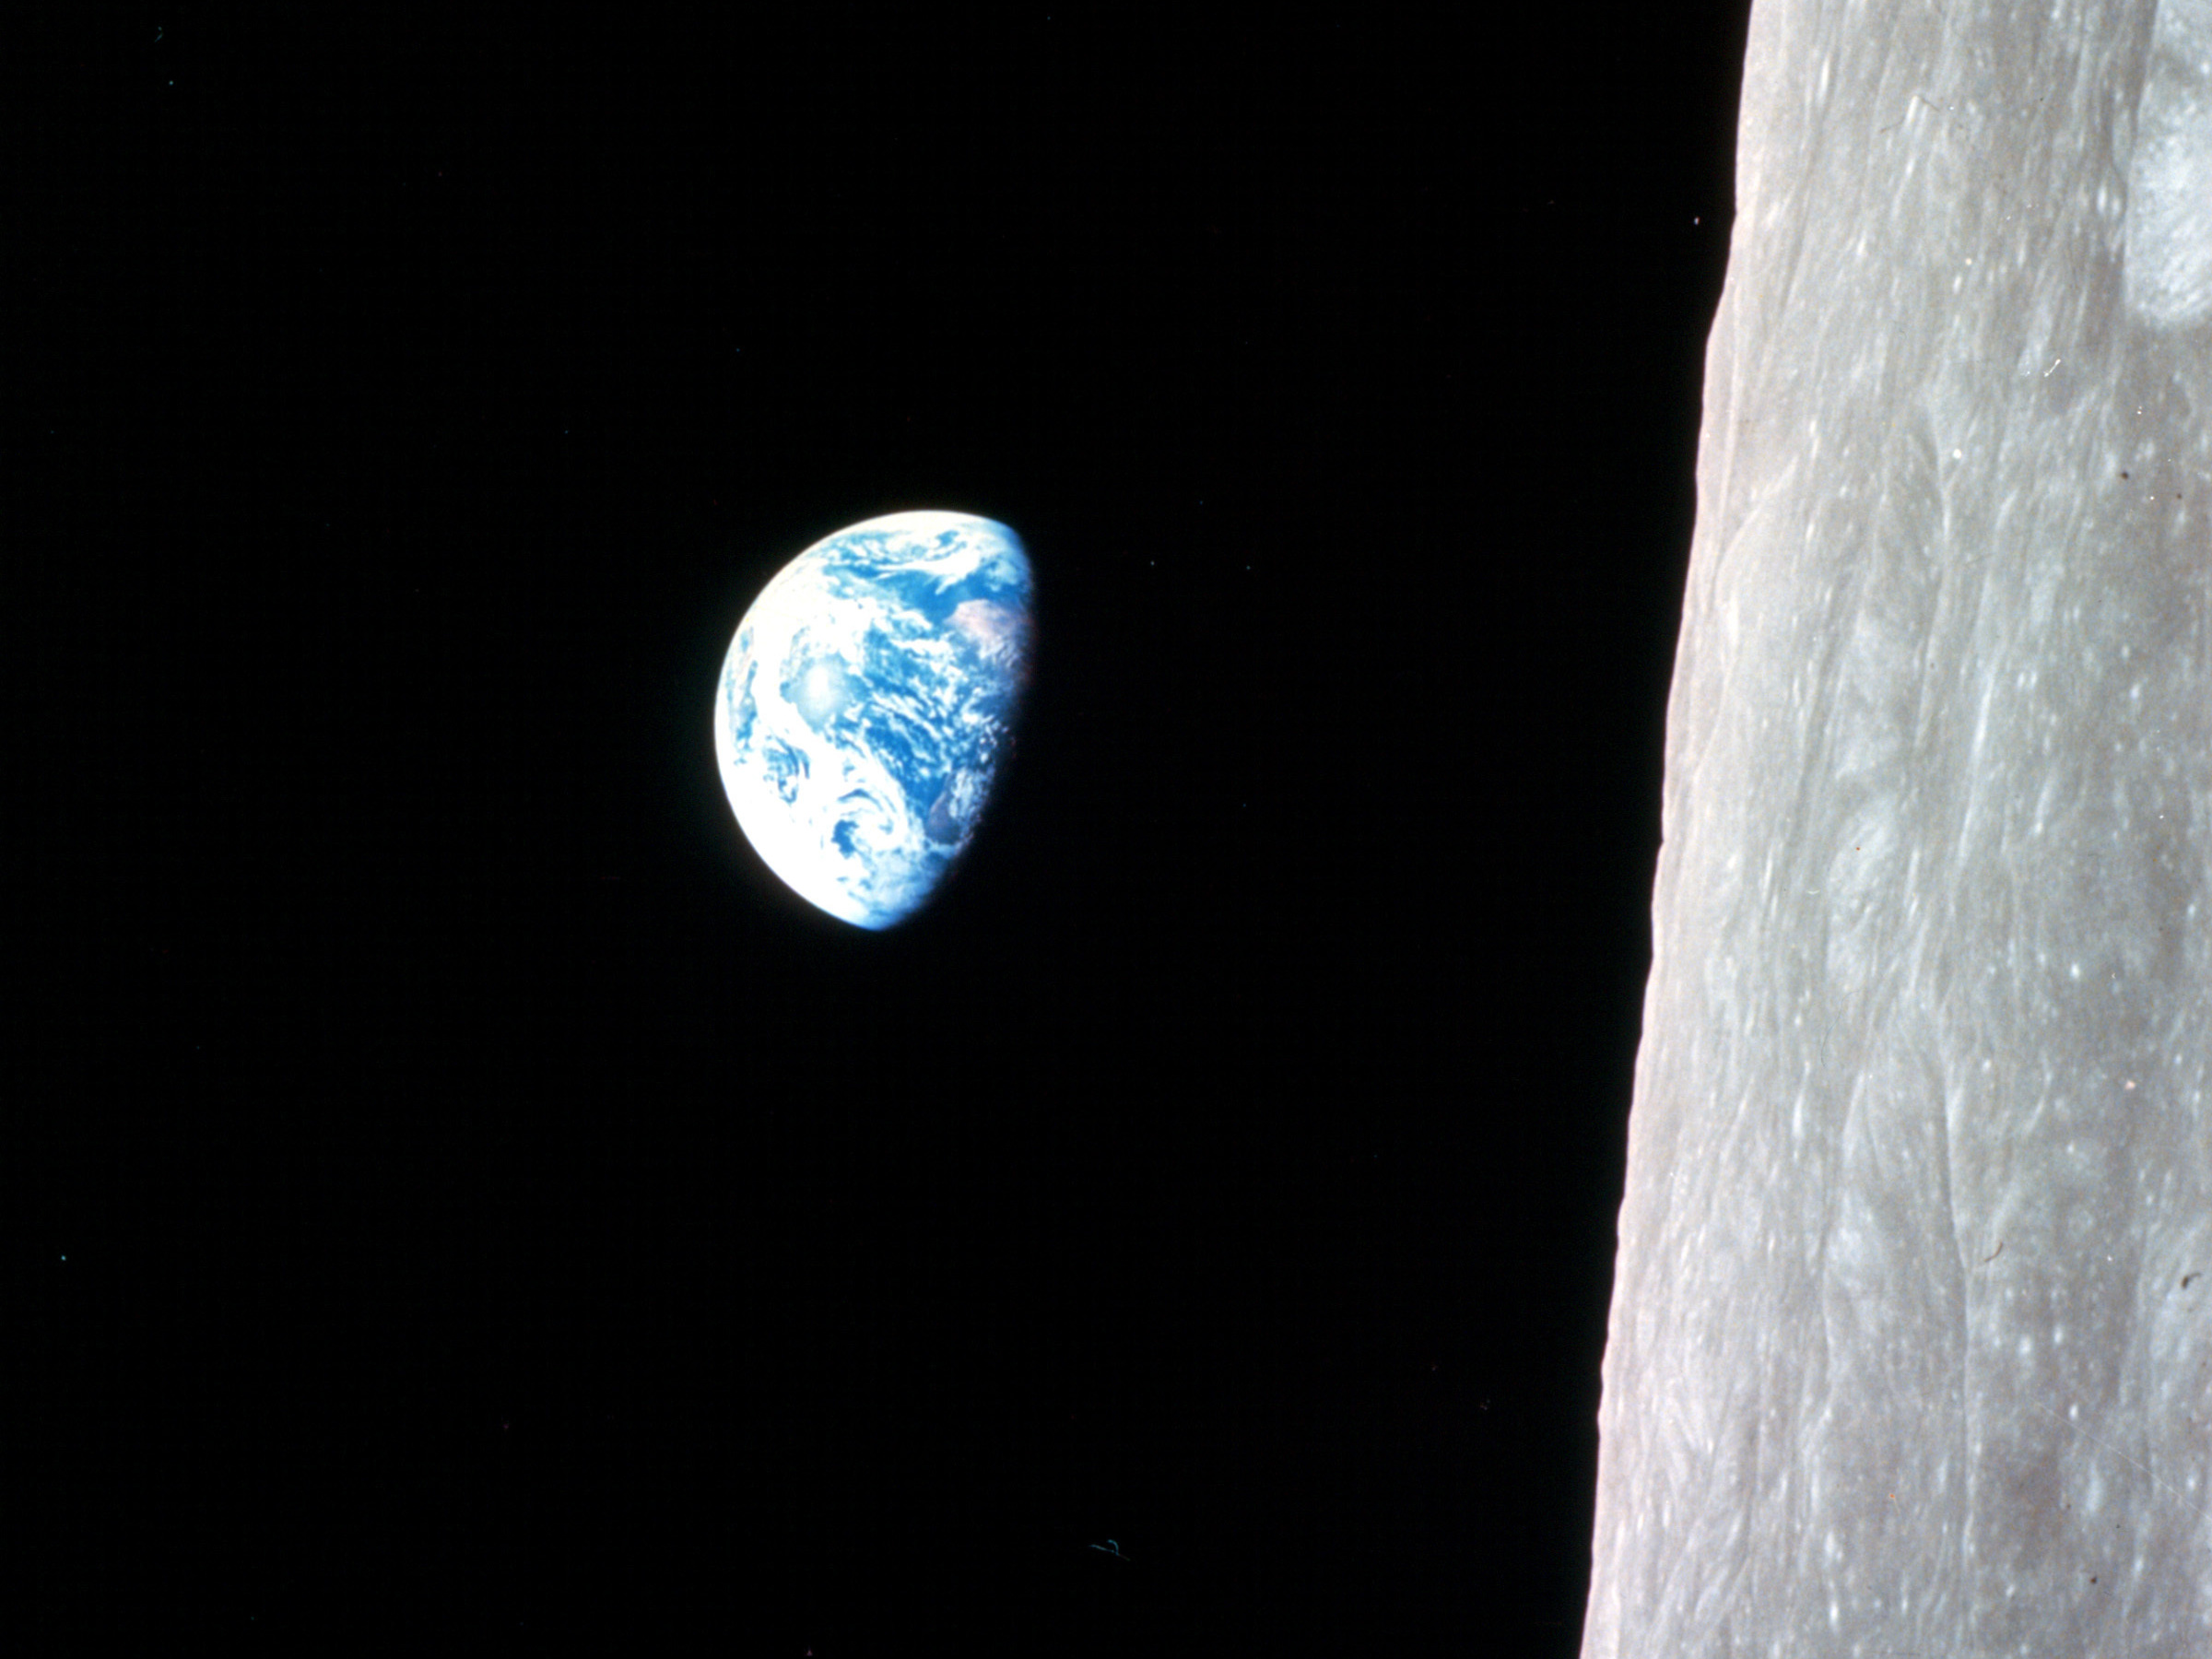 earthrise from moon apollo - photo #25